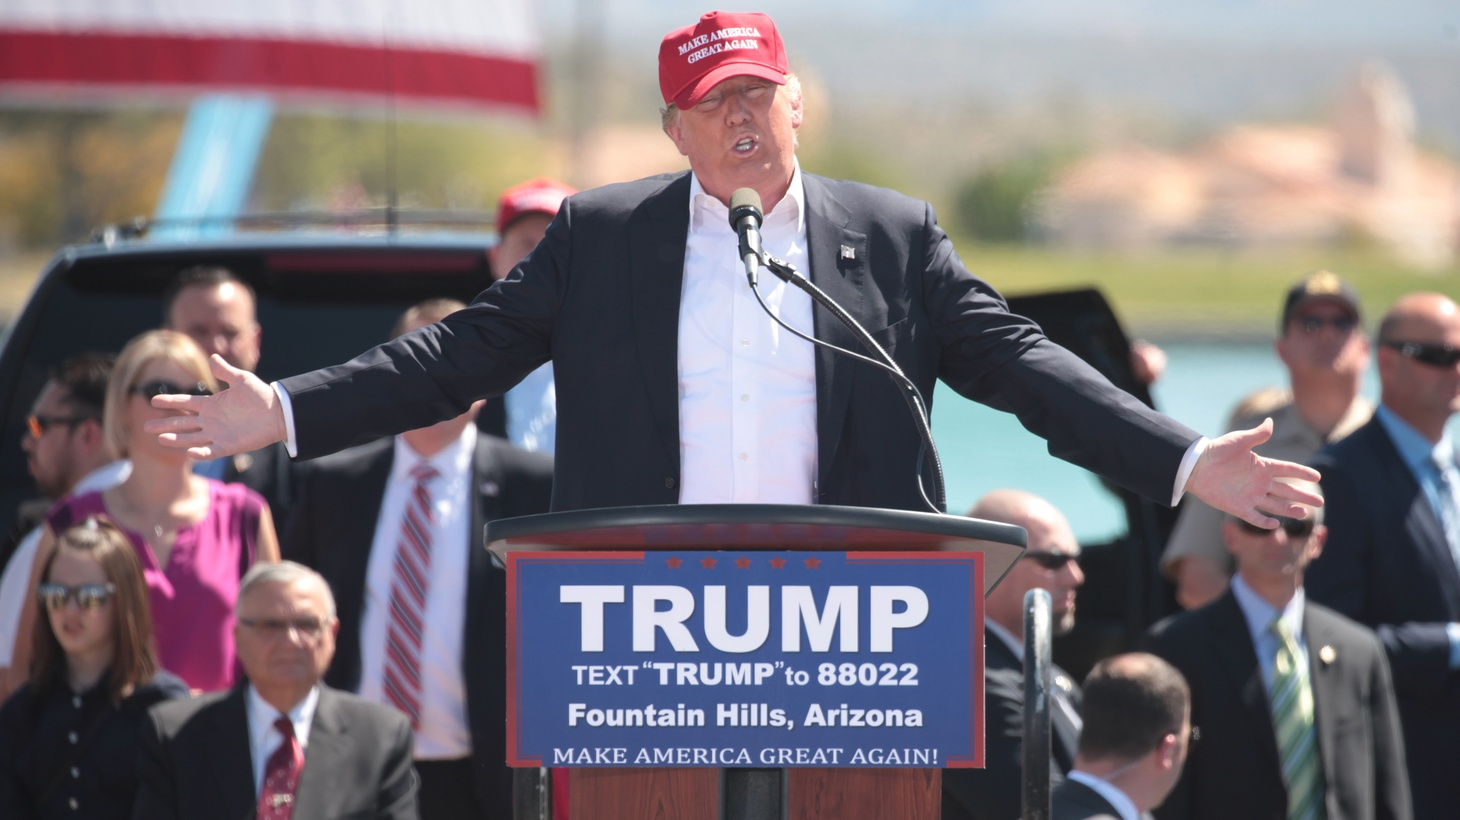 Donald Trump speaking with supporters at a campaign rally at Fountain Park in Fountain Hills, Arizona.